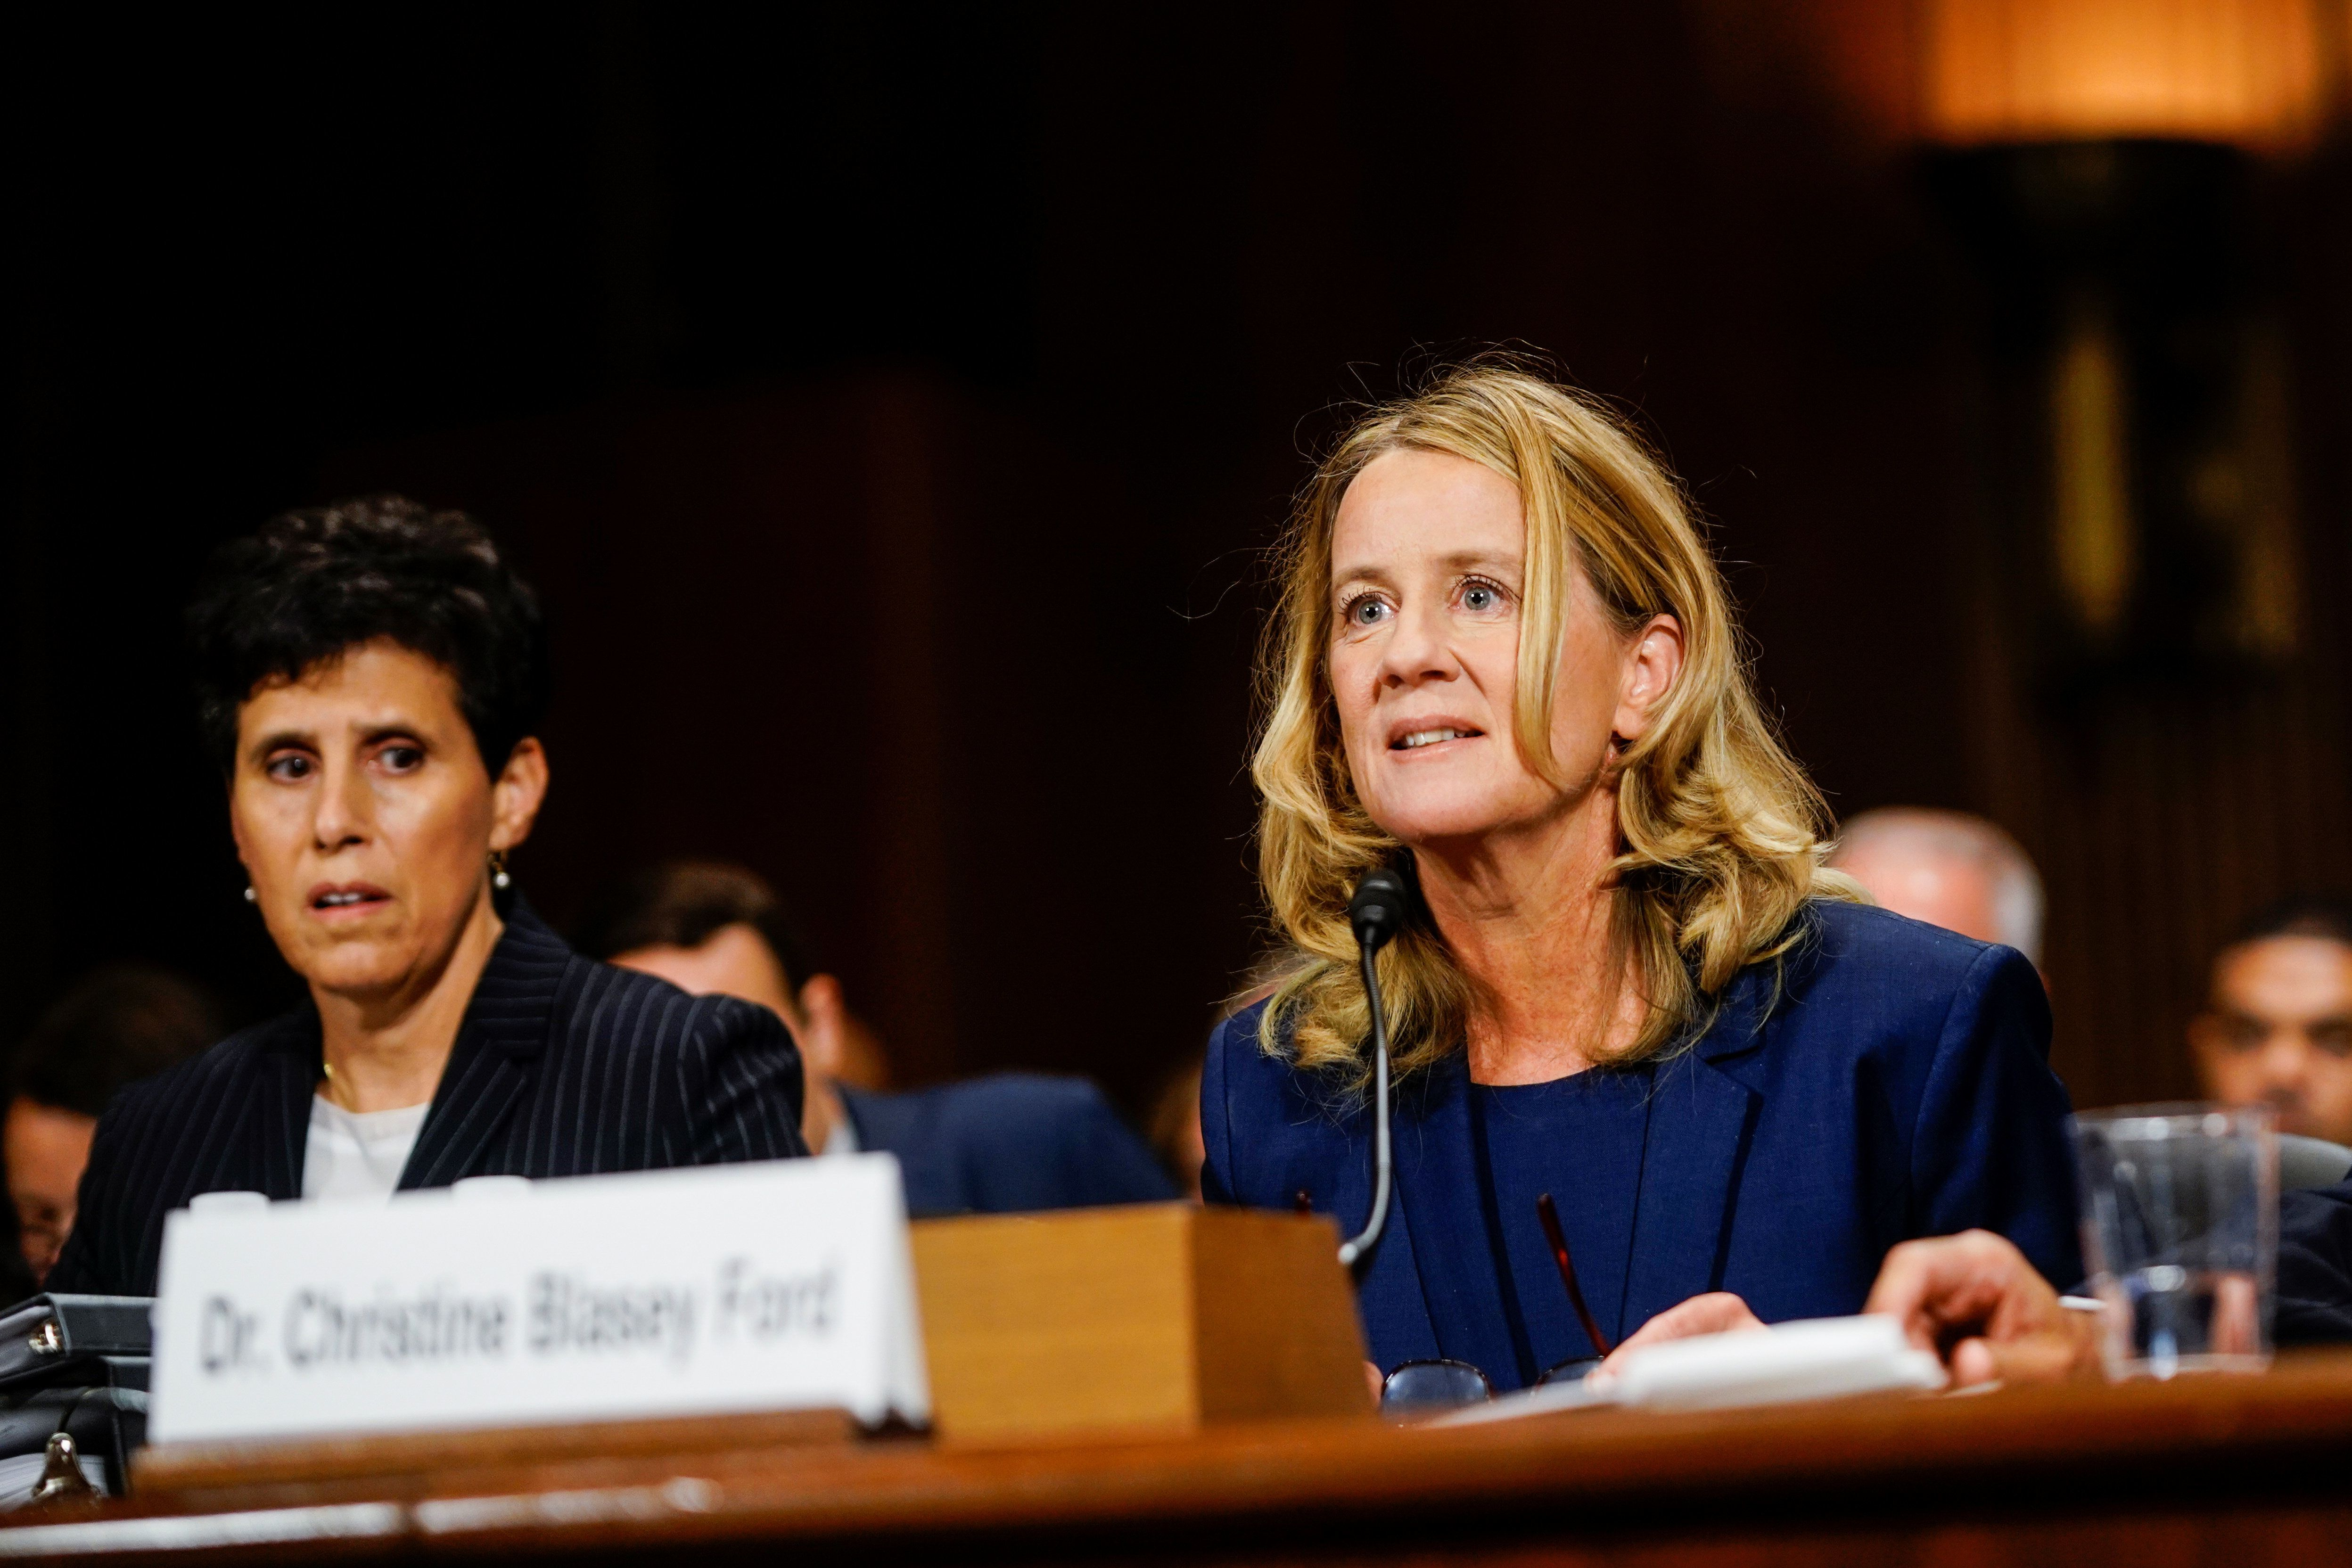 Christine Blasey Ford, with lawyer Debra S. Katz, left, answers questions at a Senate Judiciary Committee hearing on Thursday, September 27, 2018 on Capitol Hill. Melina Mara/Pool via REUTERS